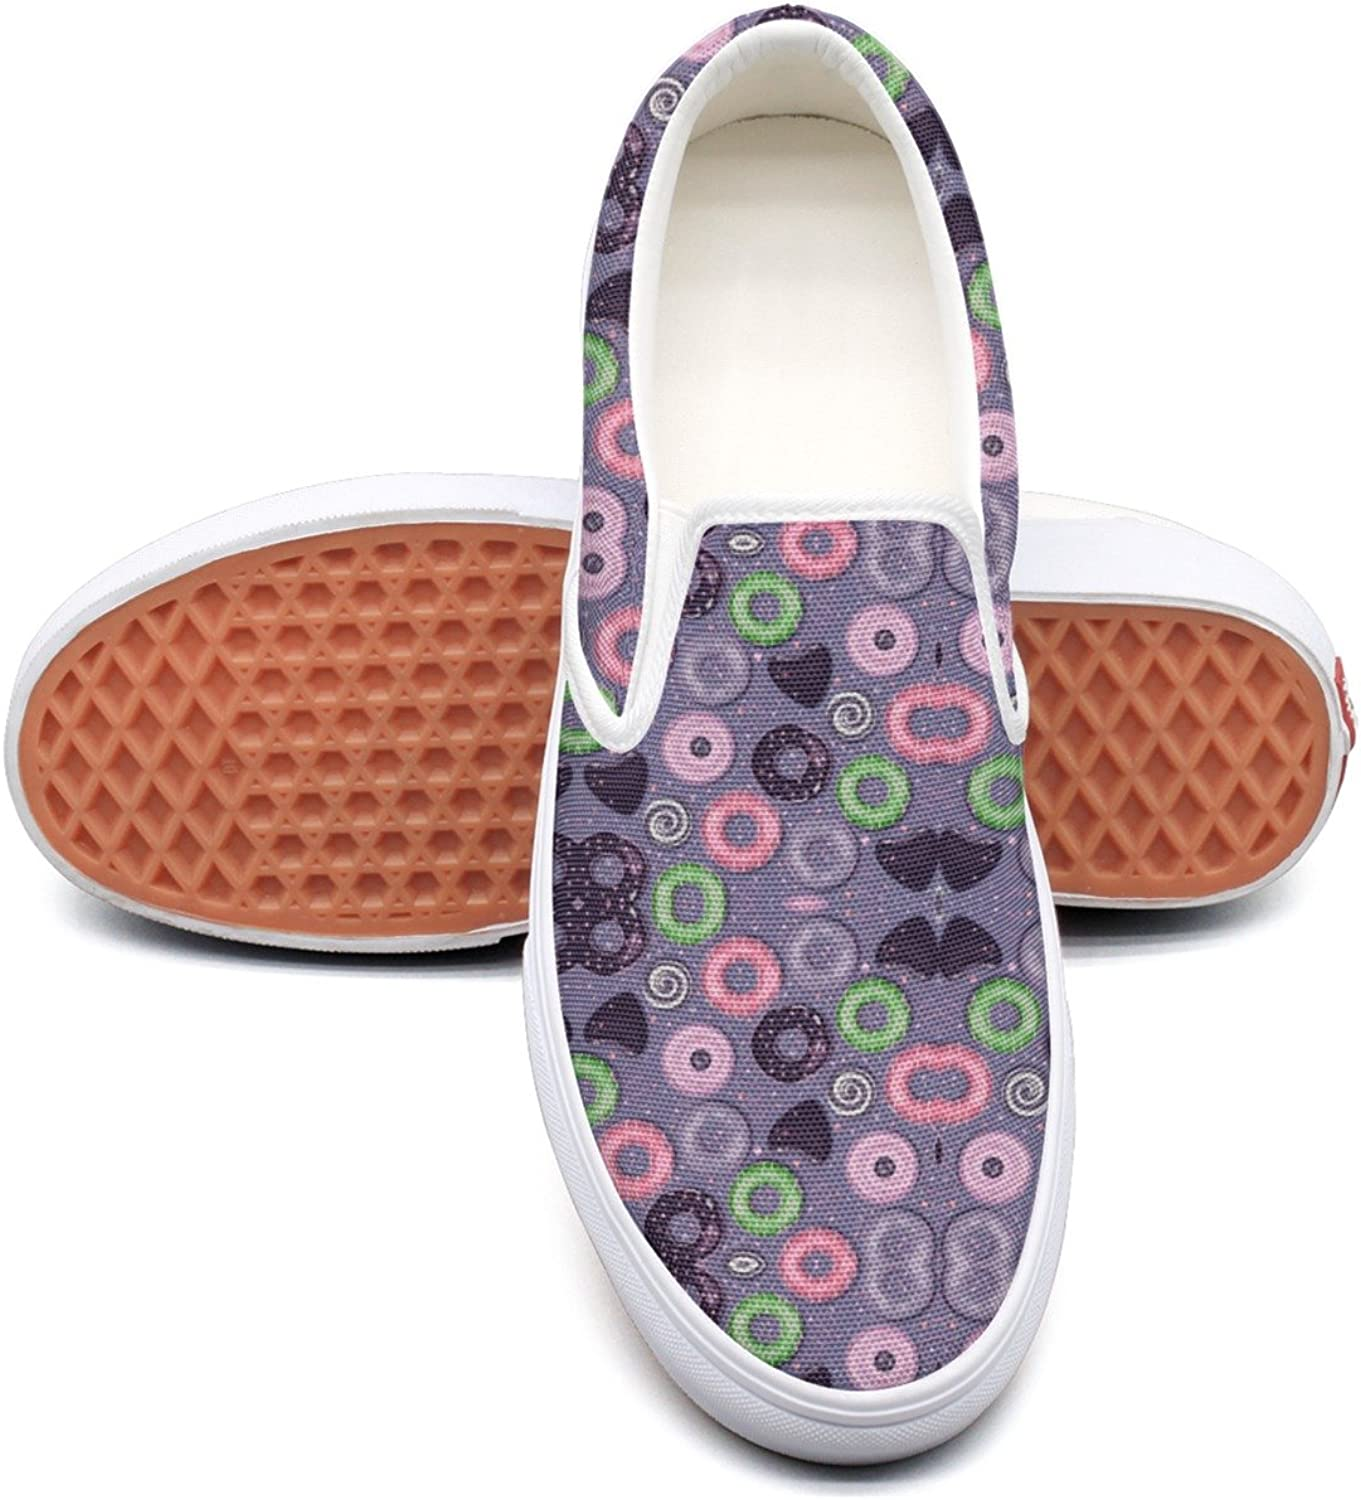 Lalige Beautiful Donut Women's Printed Graphics Canvas Slip-on Walking shoes